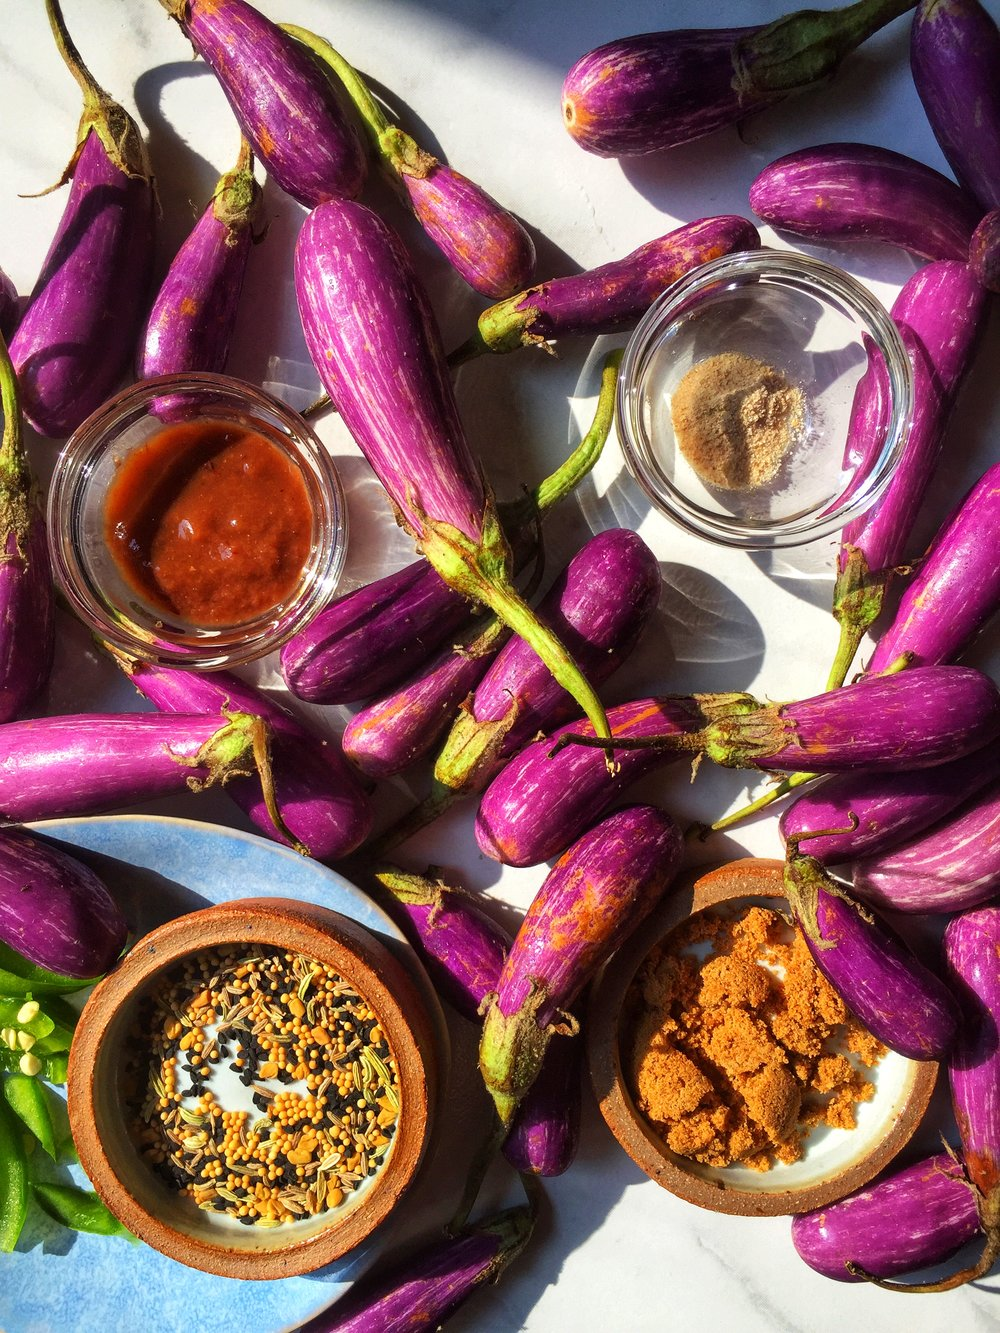 fairy tale eggplants with panch phoron, tamarind, palm sugar, and green chilies